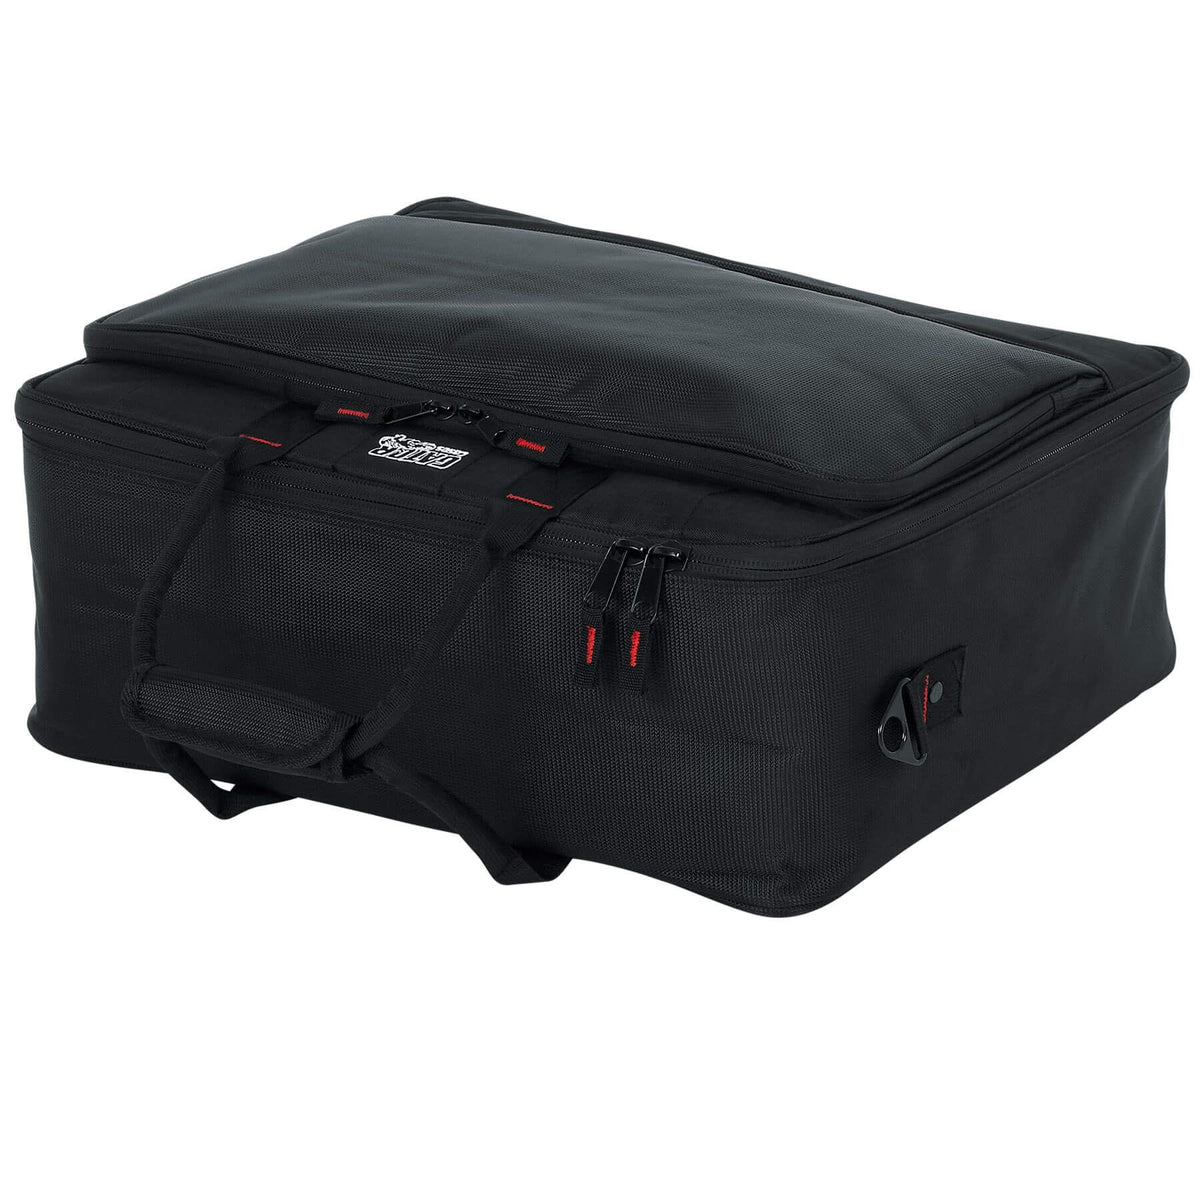 Gator Cases Padded Nylon Equipment Bag for Tascam DP-02, DP-02CF, DP-02FX/CD Recorders